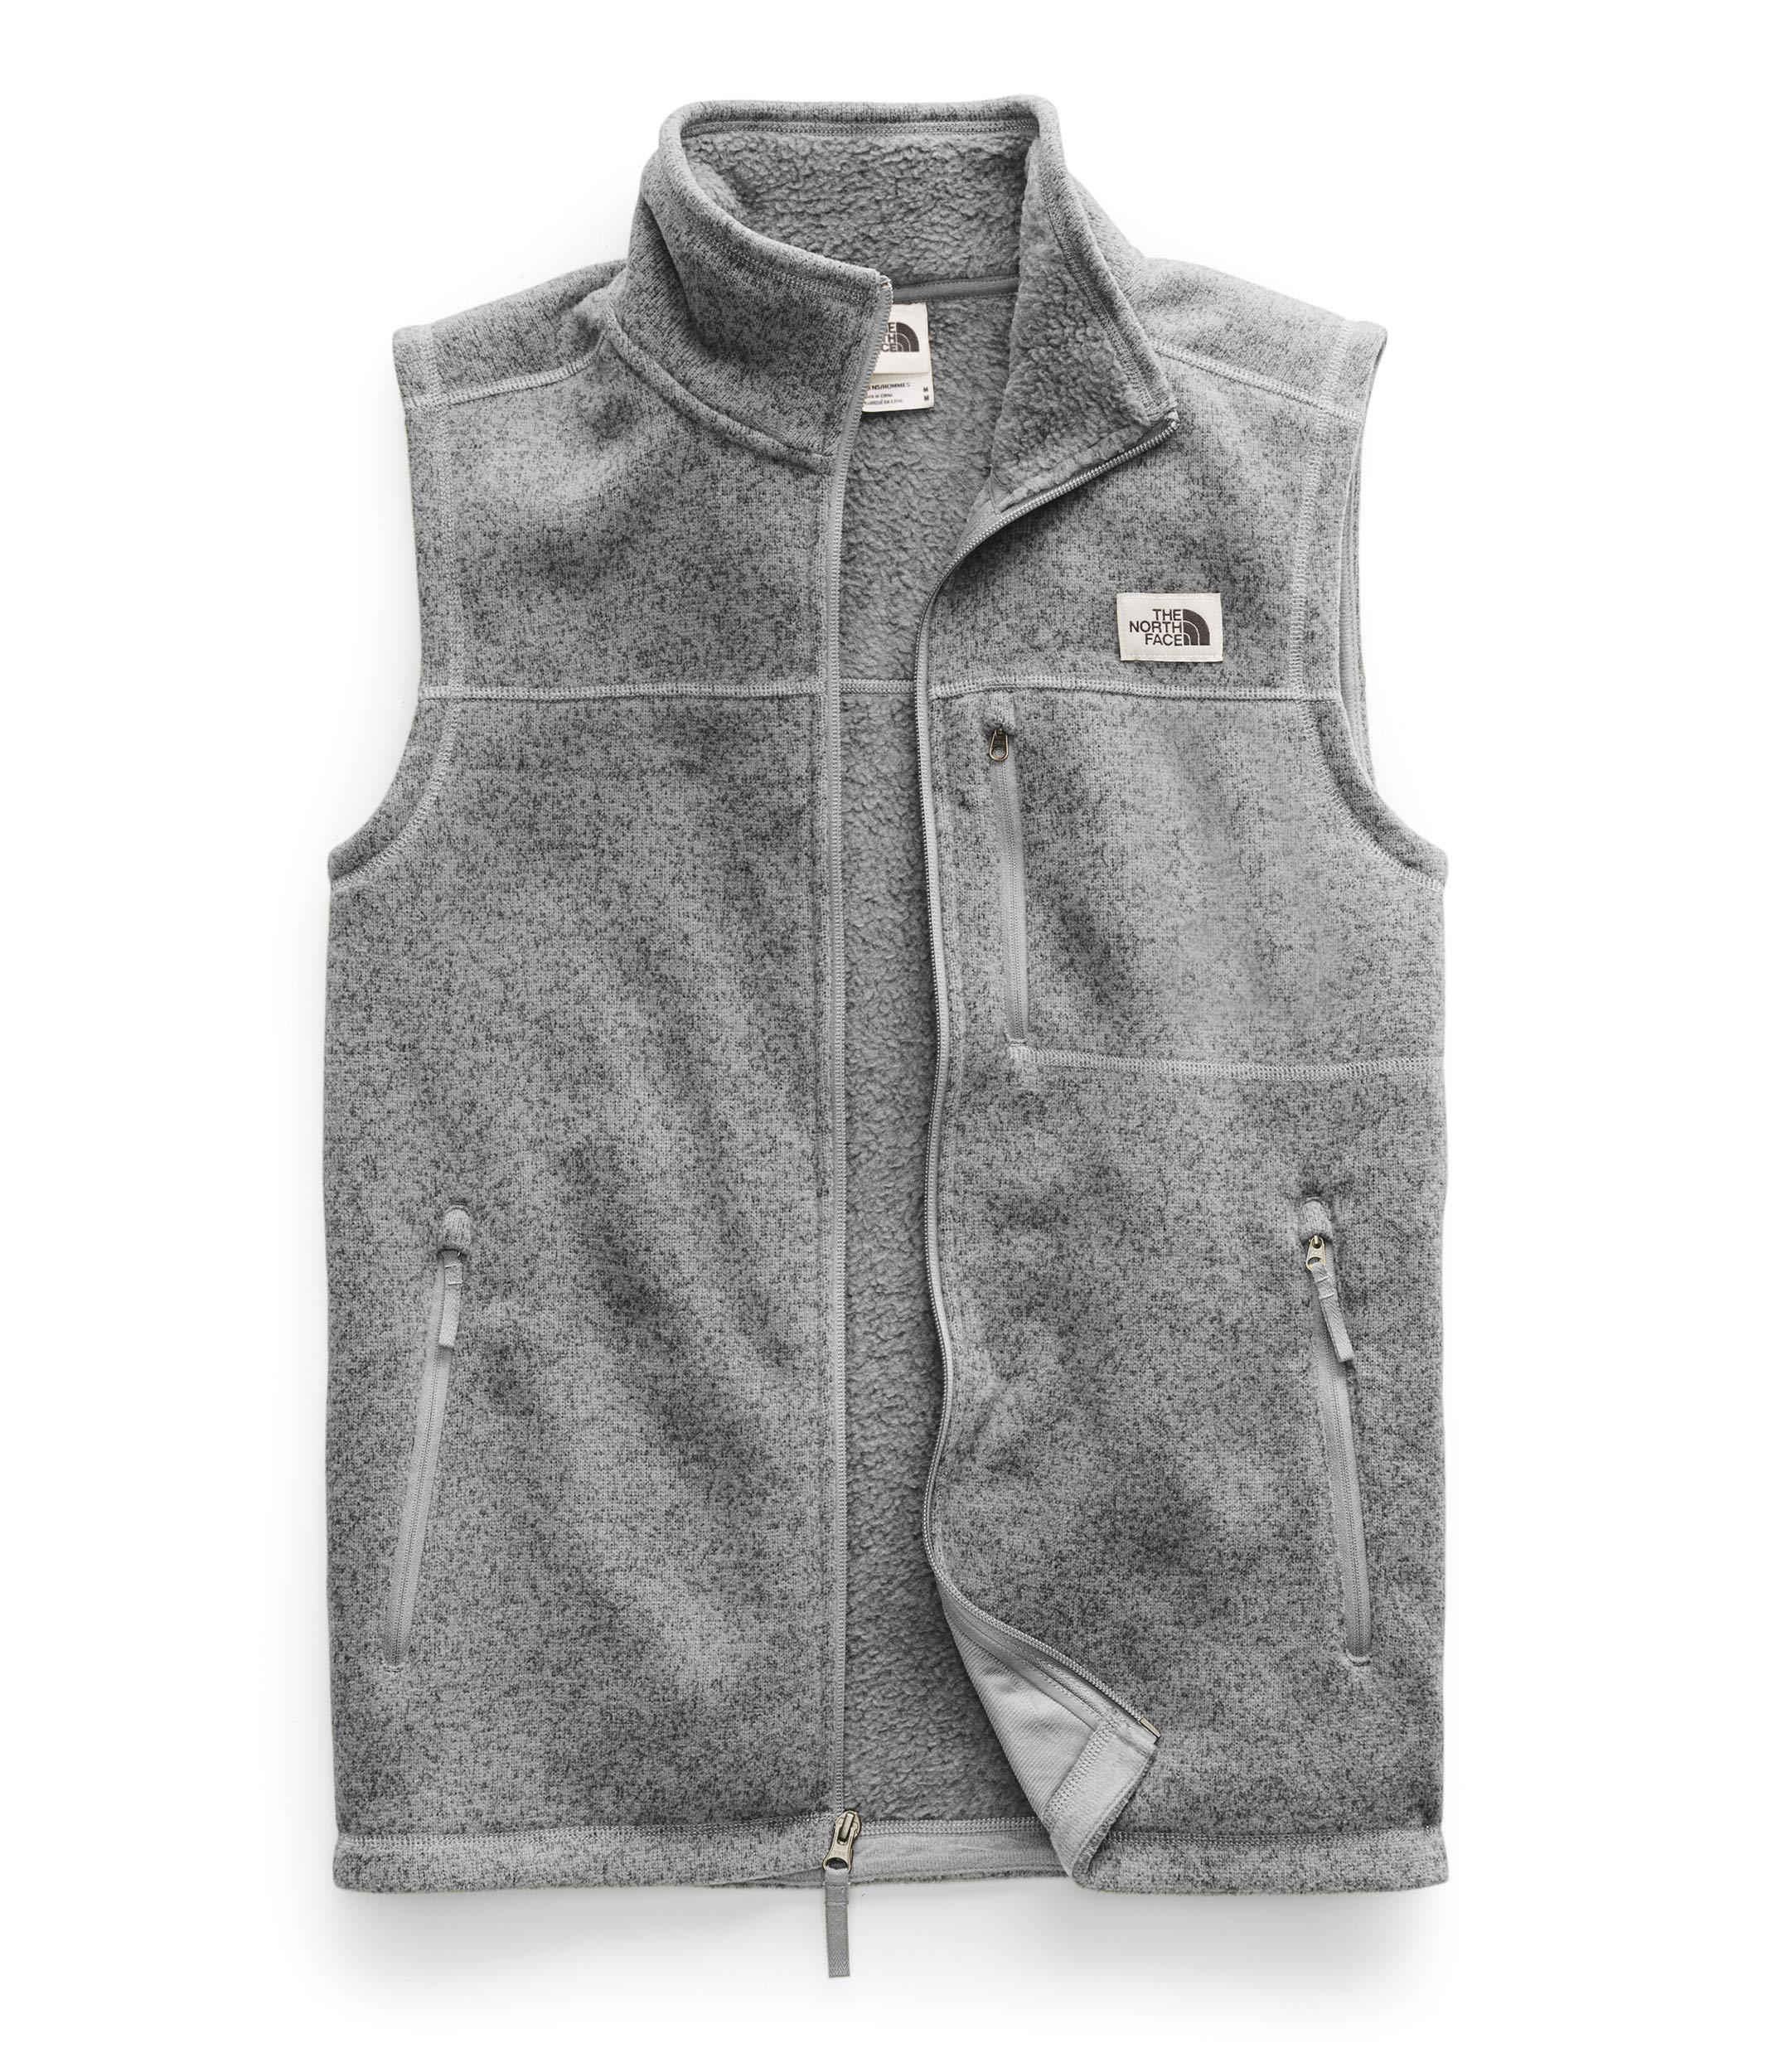 The North Face Men's Gordon Lyons Vest by The North Face